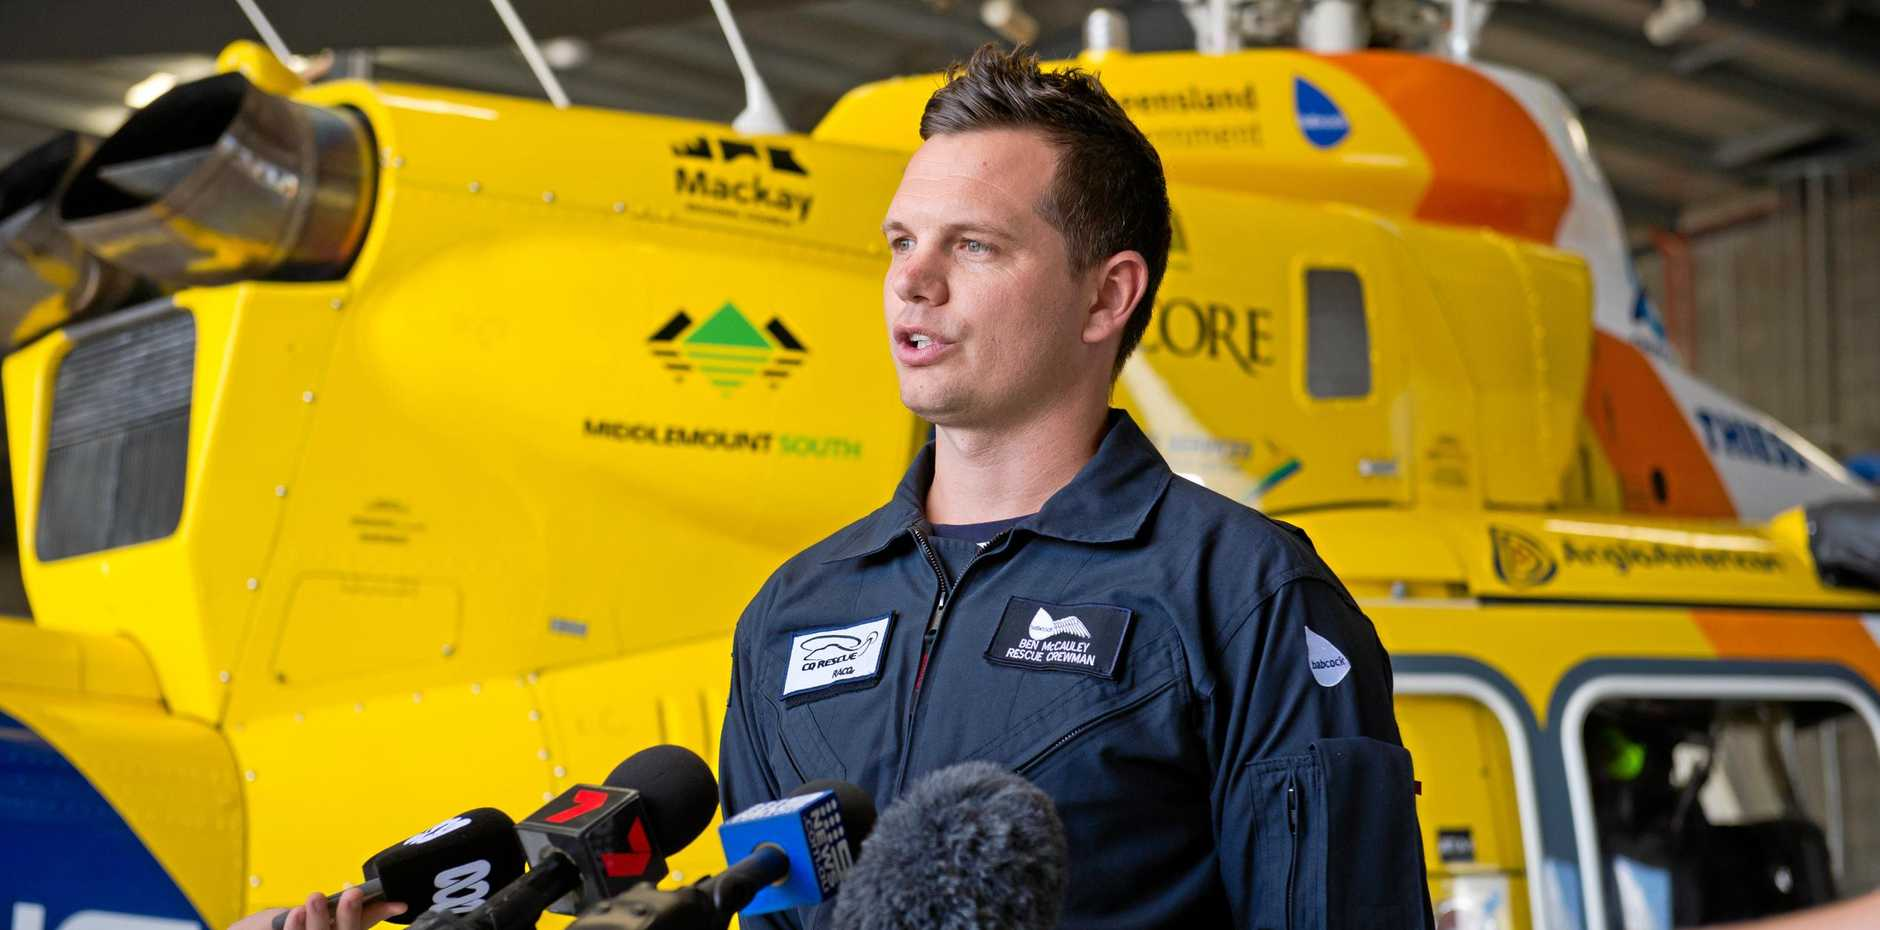 Ben McCauley has been part of the RACQ CQ Rescue crew for all three shark attacks.